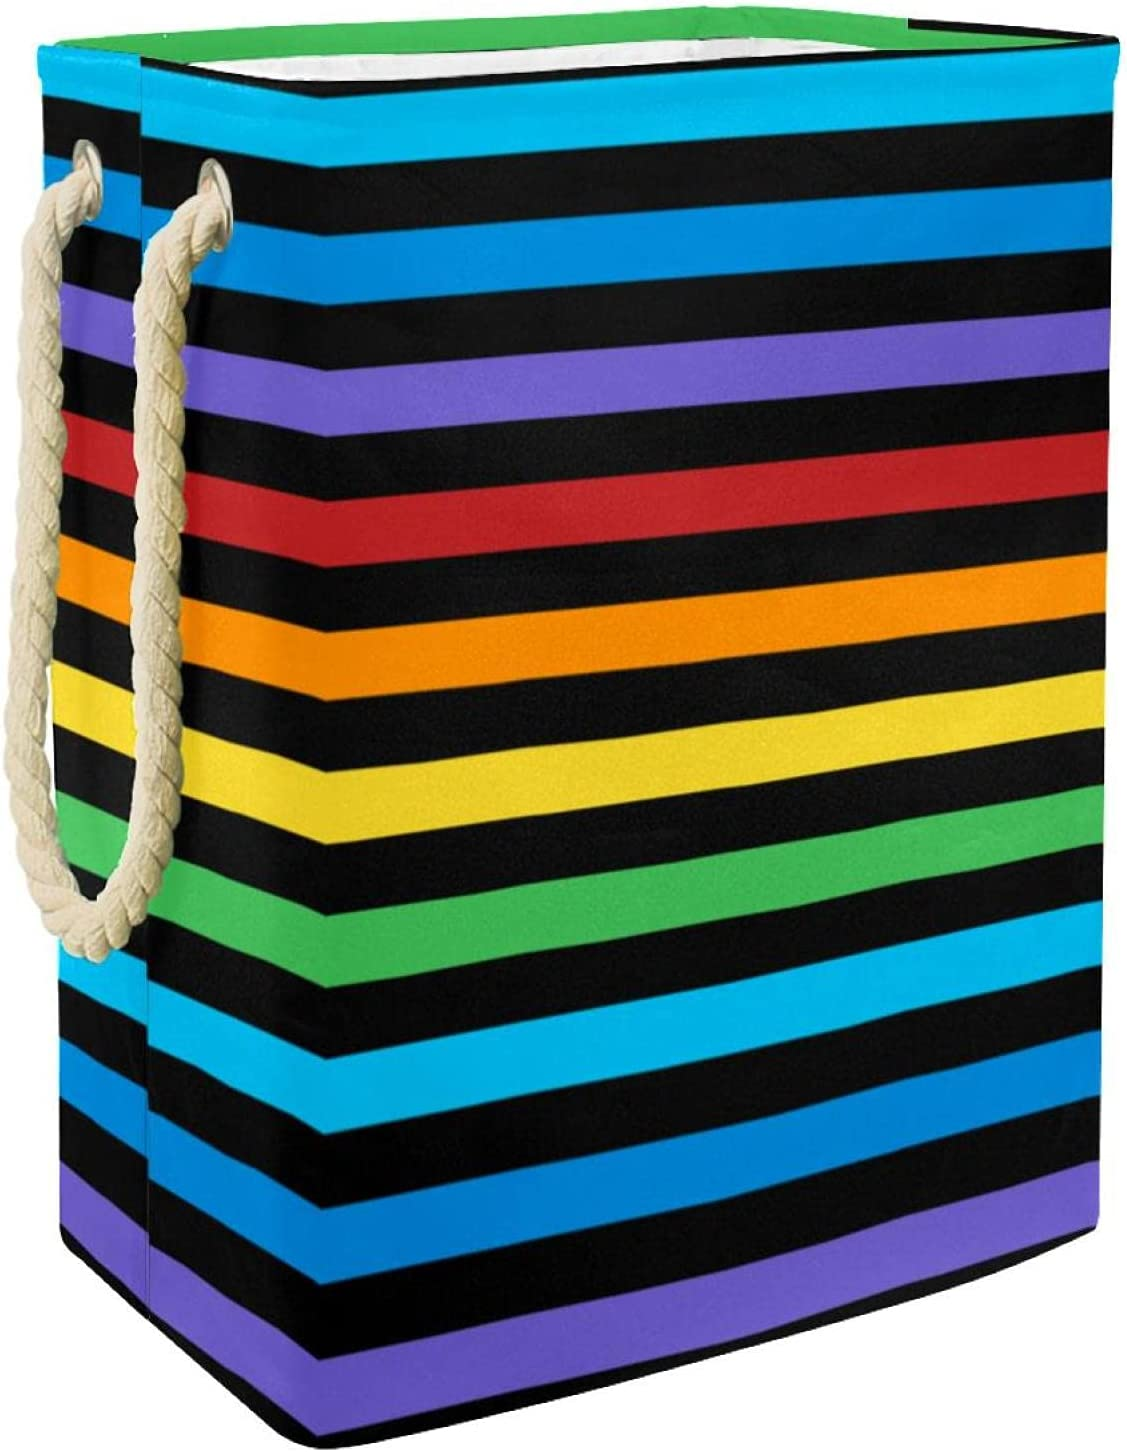 Laundry Basket with Rope Handle Selling and selling Colorful Lines Horizontal Manufacturer regenerated product Stripe